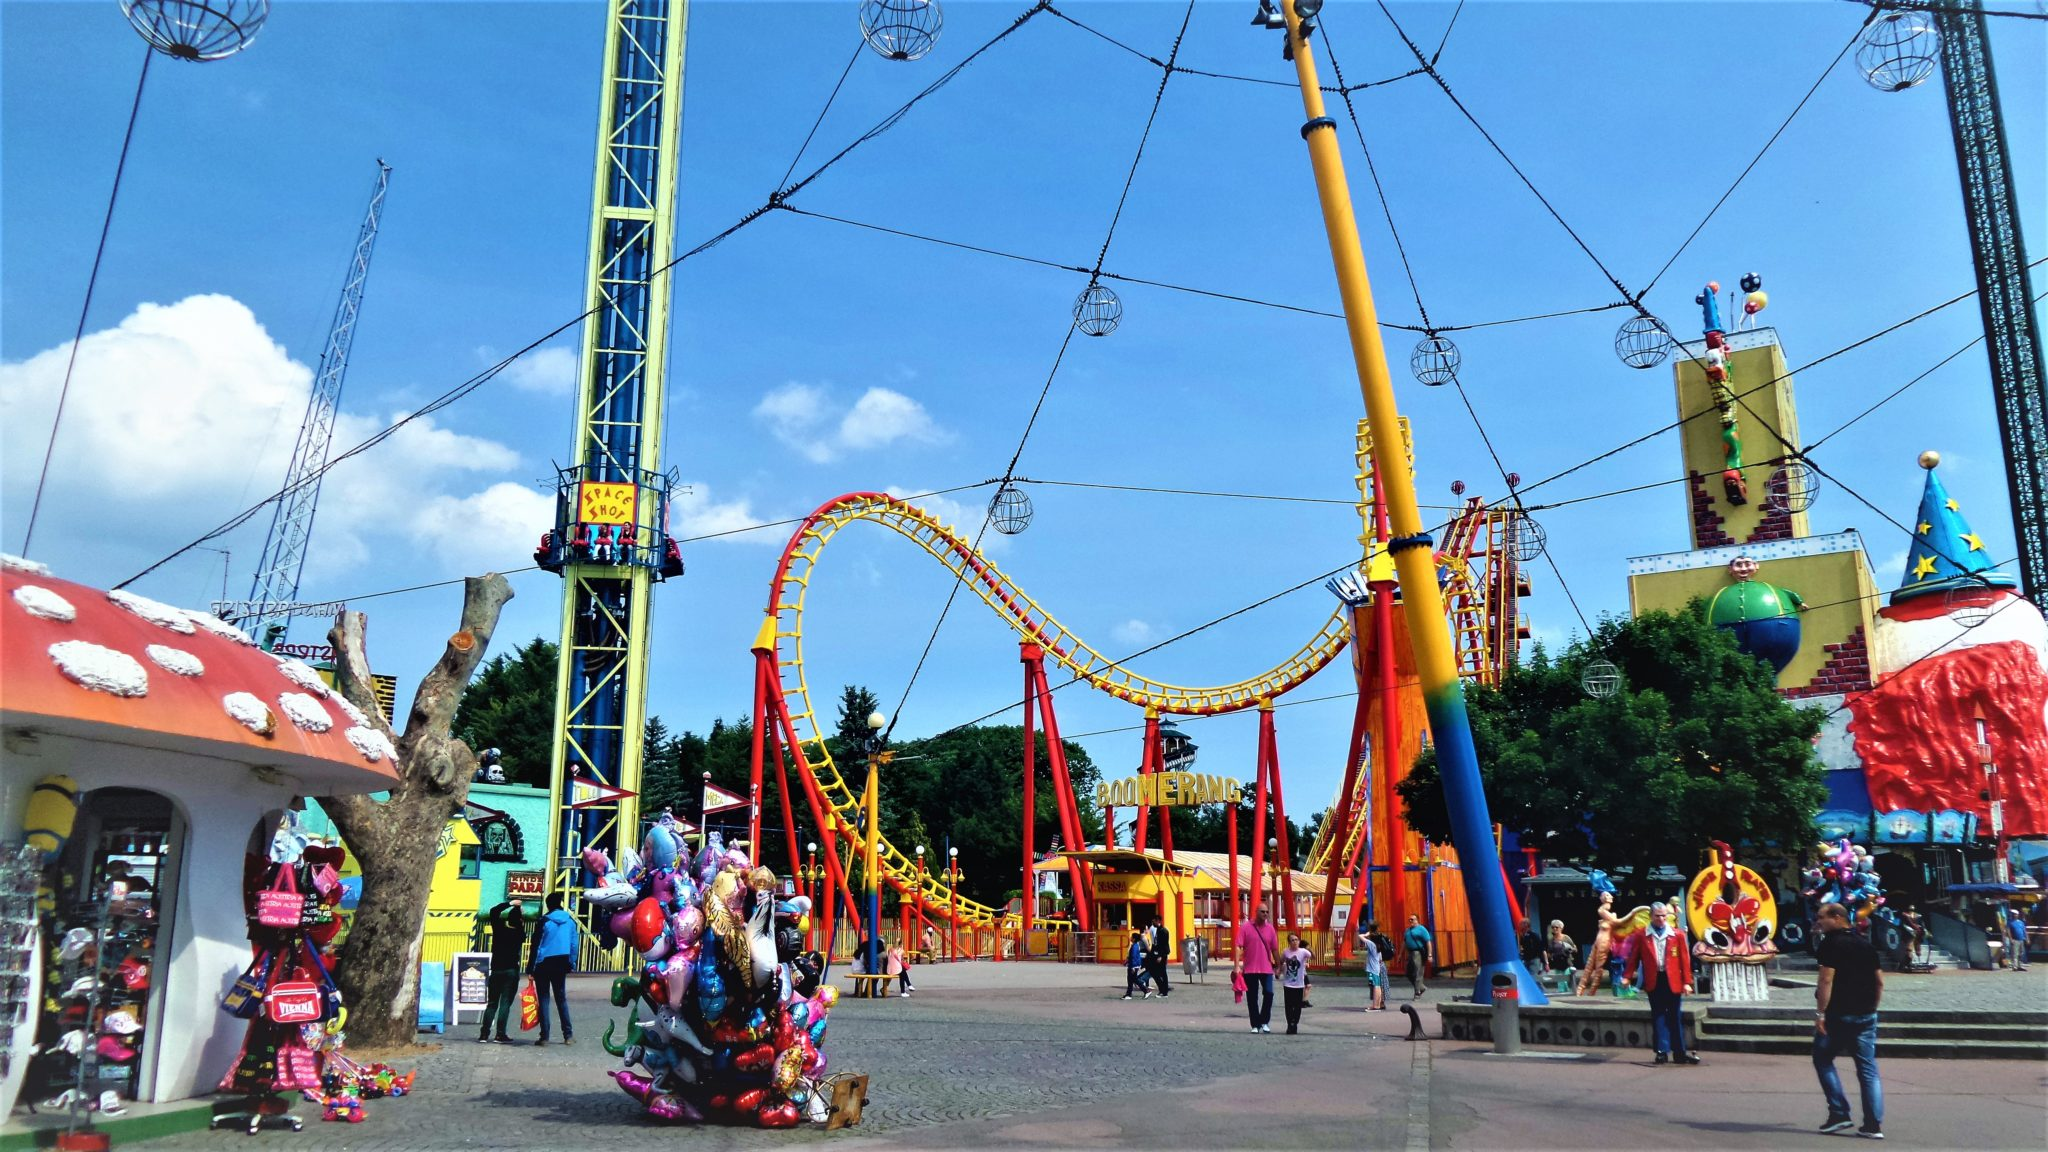 Prater fairground rides, 2 days in Vienna, Austria